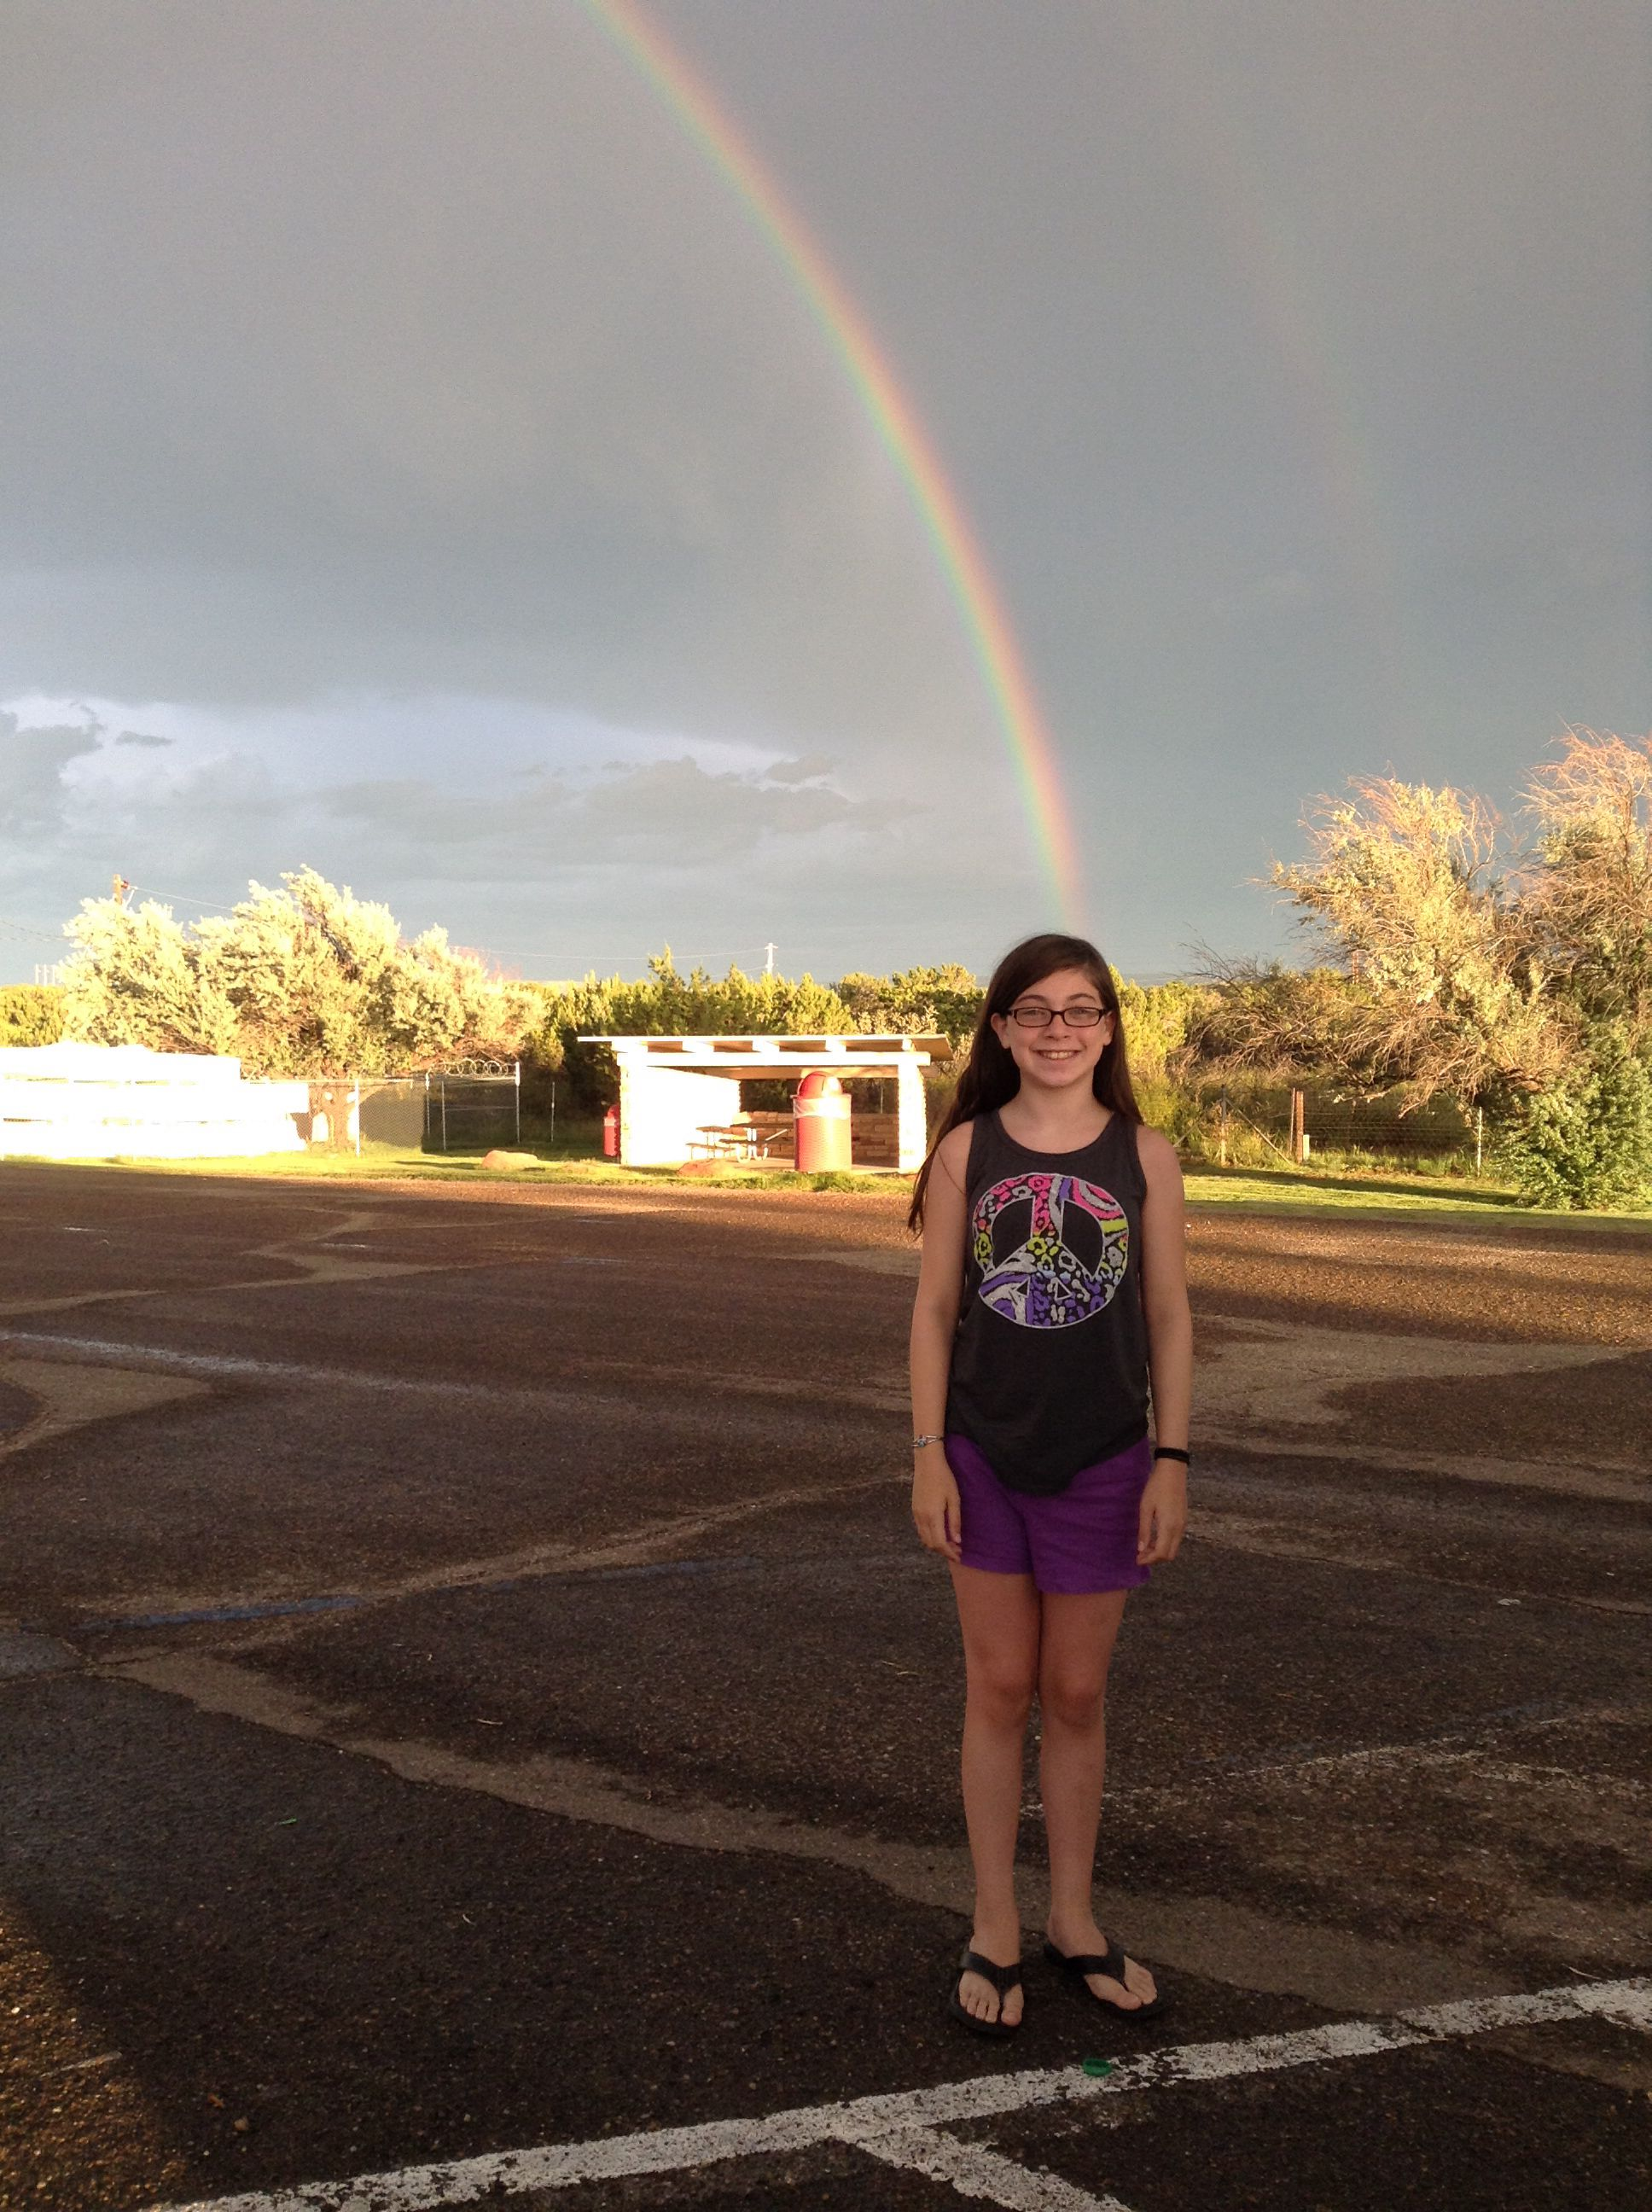 Me at a double rainbow